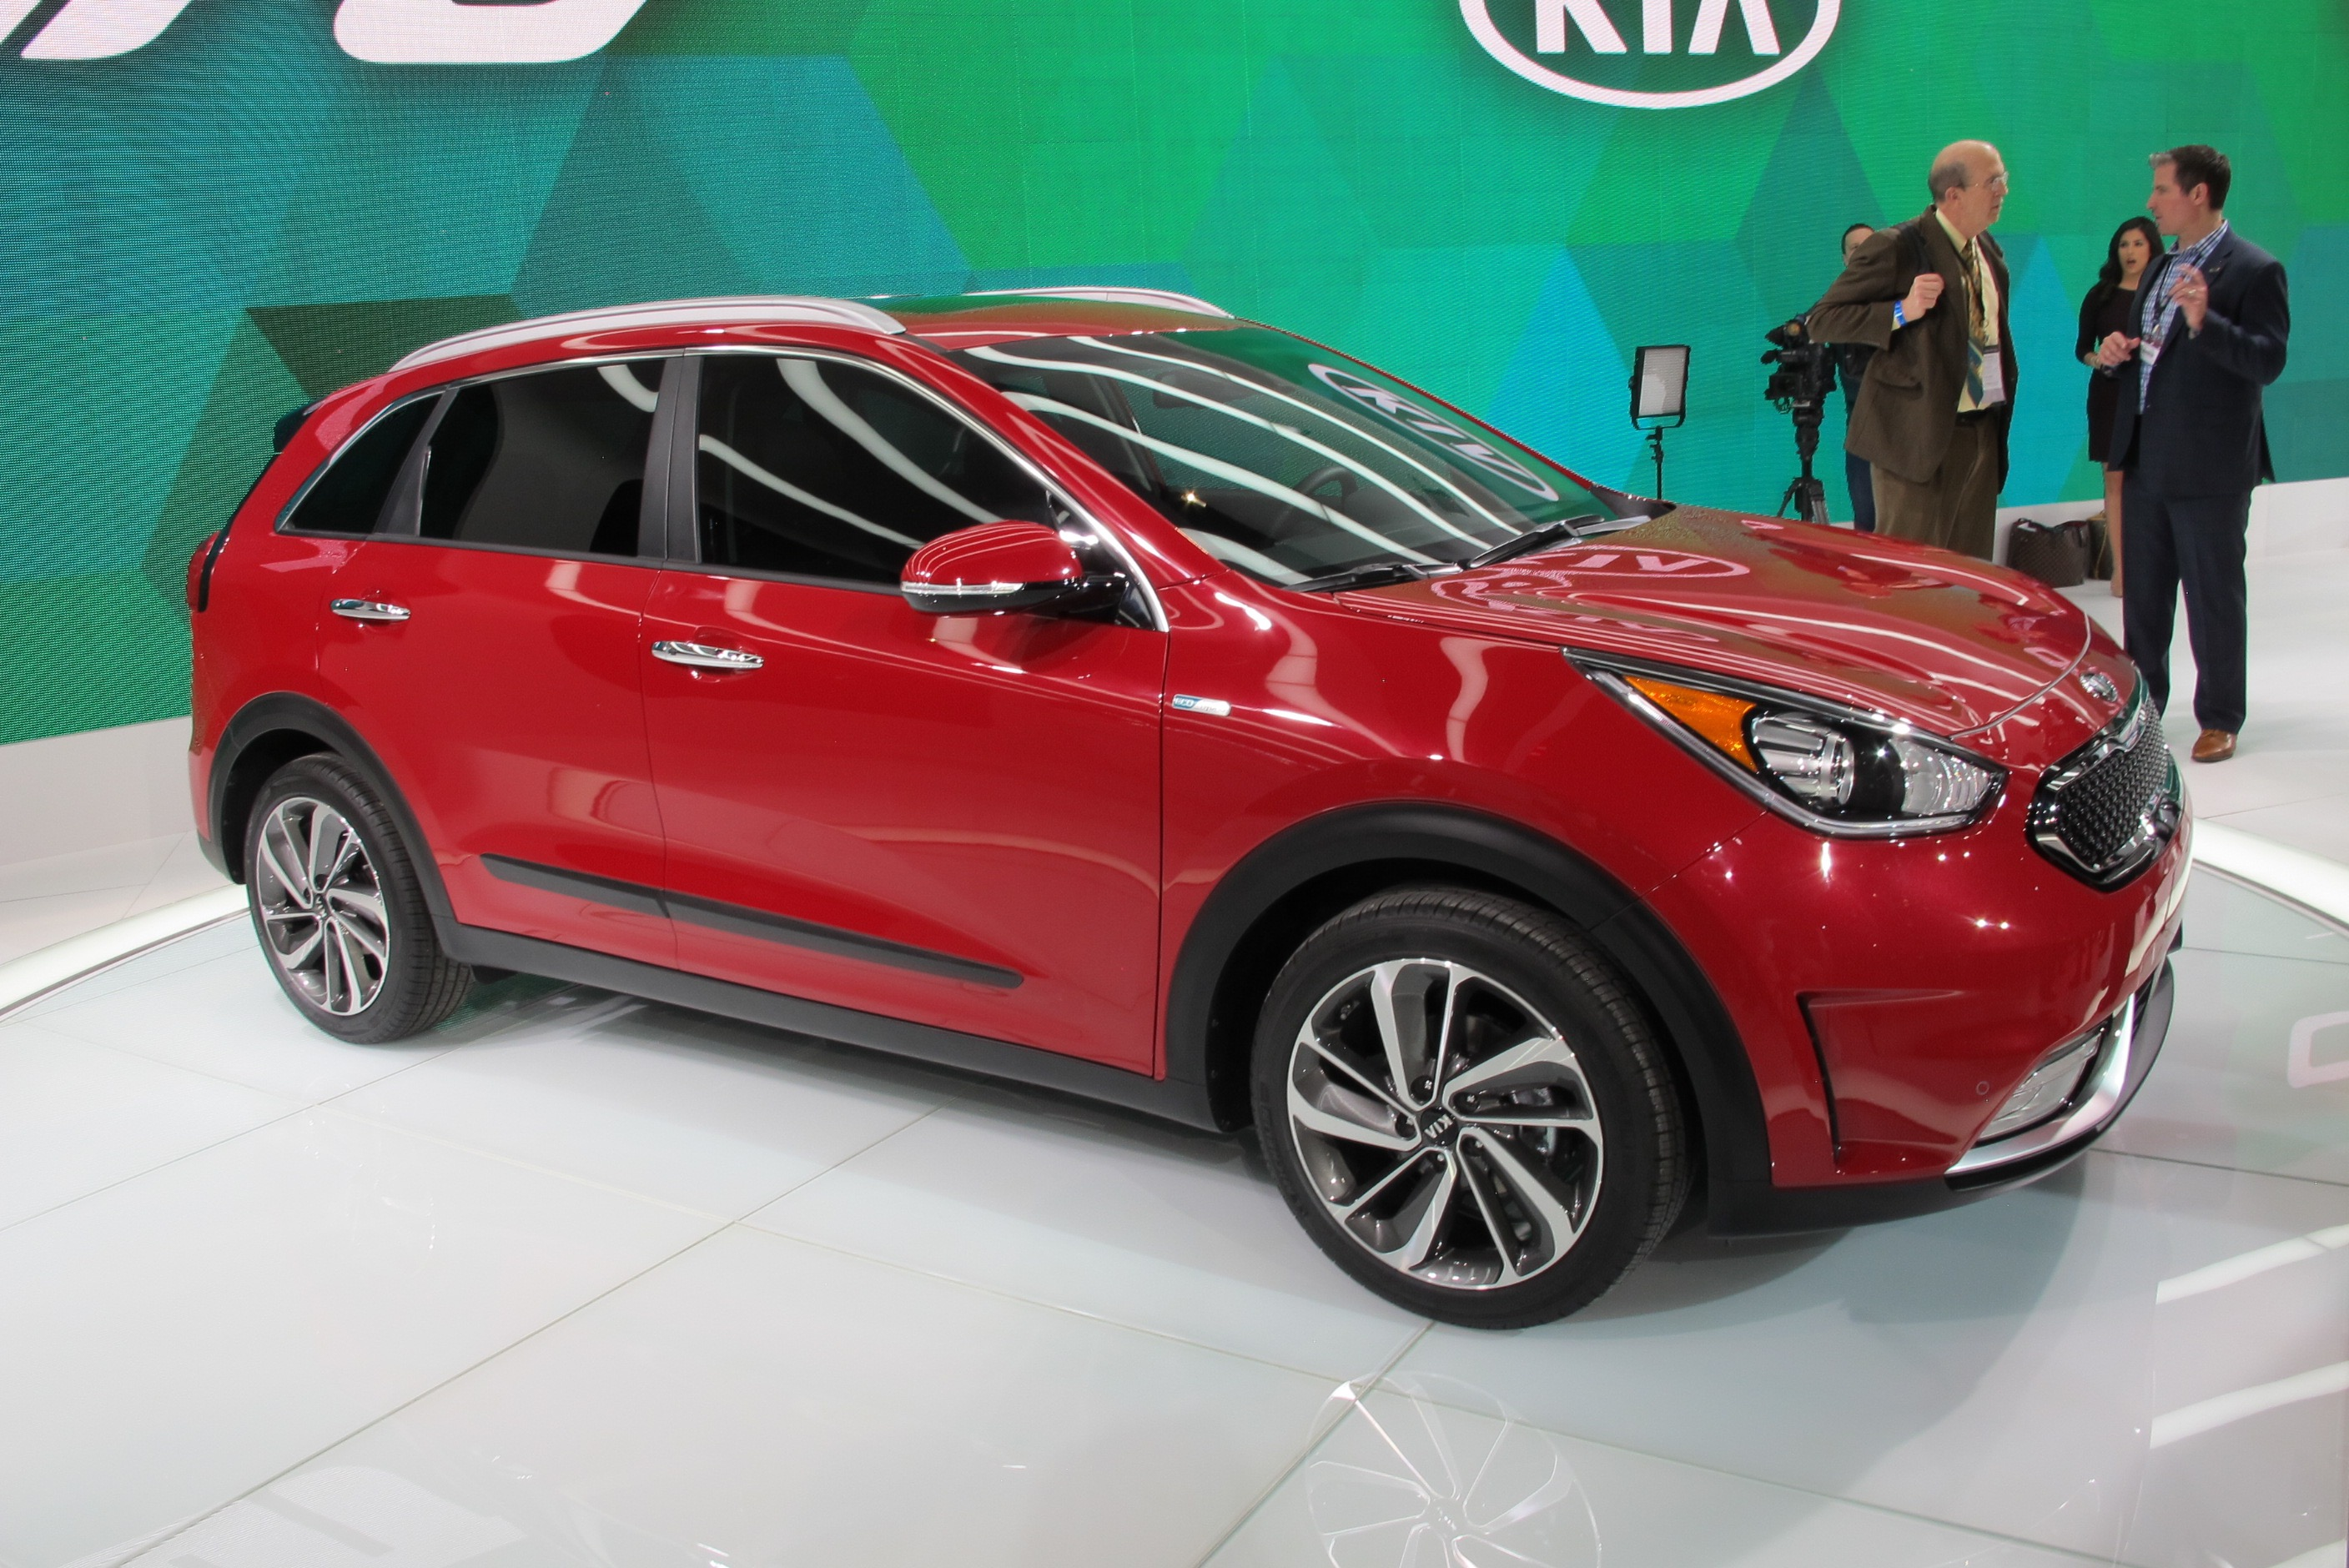 2017 Kia Niro hybrid revealed, promises 50 MPG combined